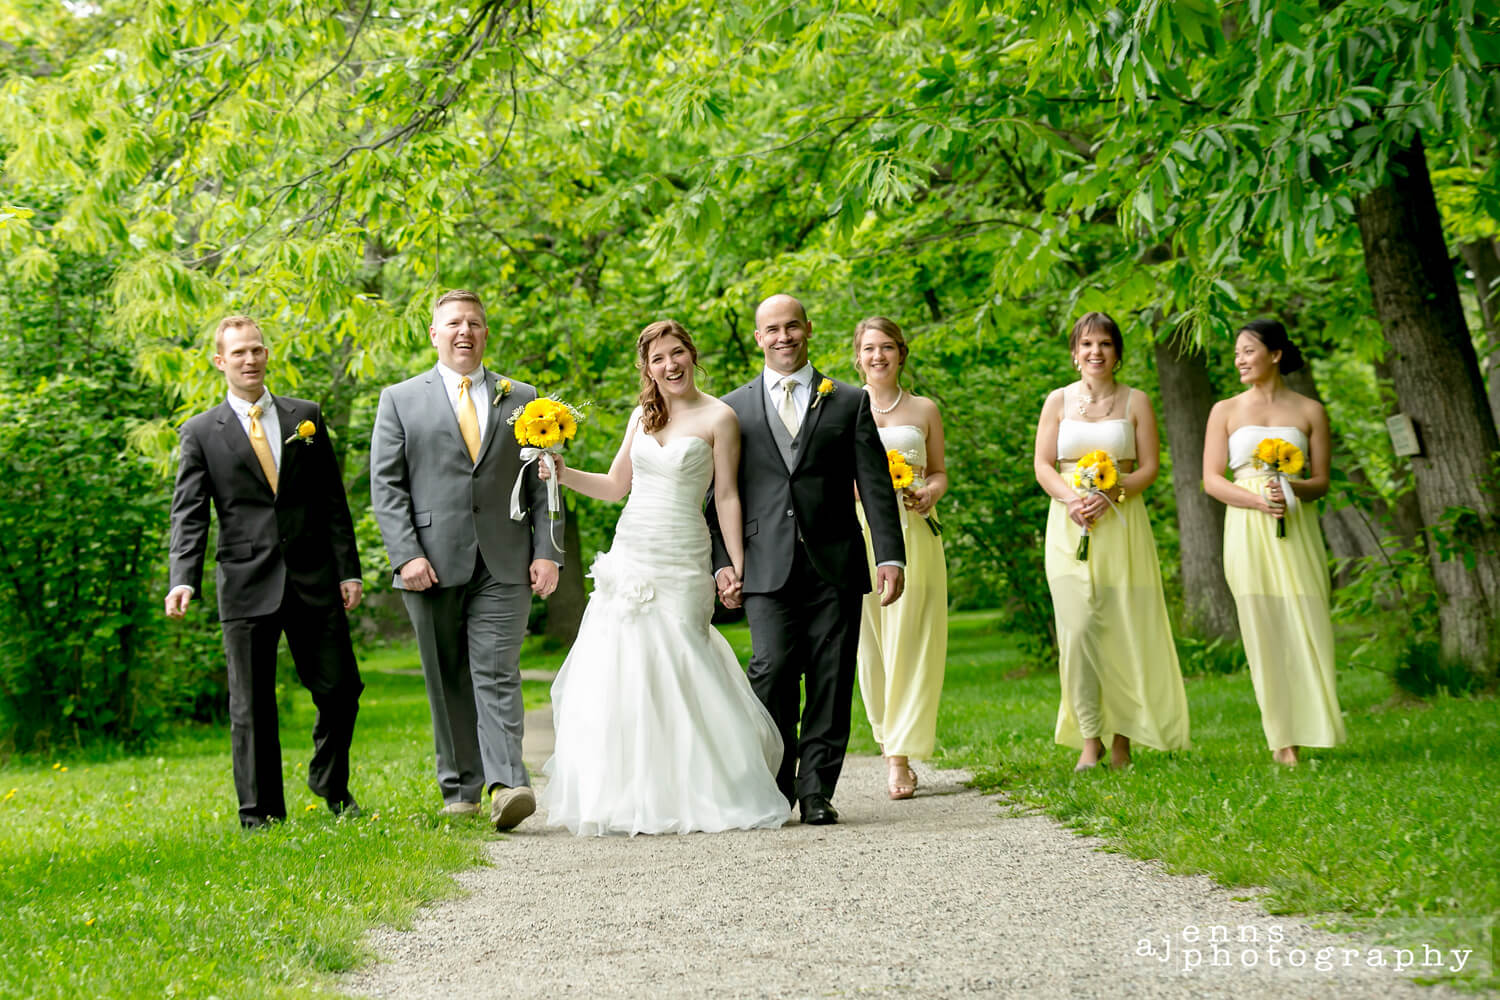 The entire wedding party walking down a path having a party